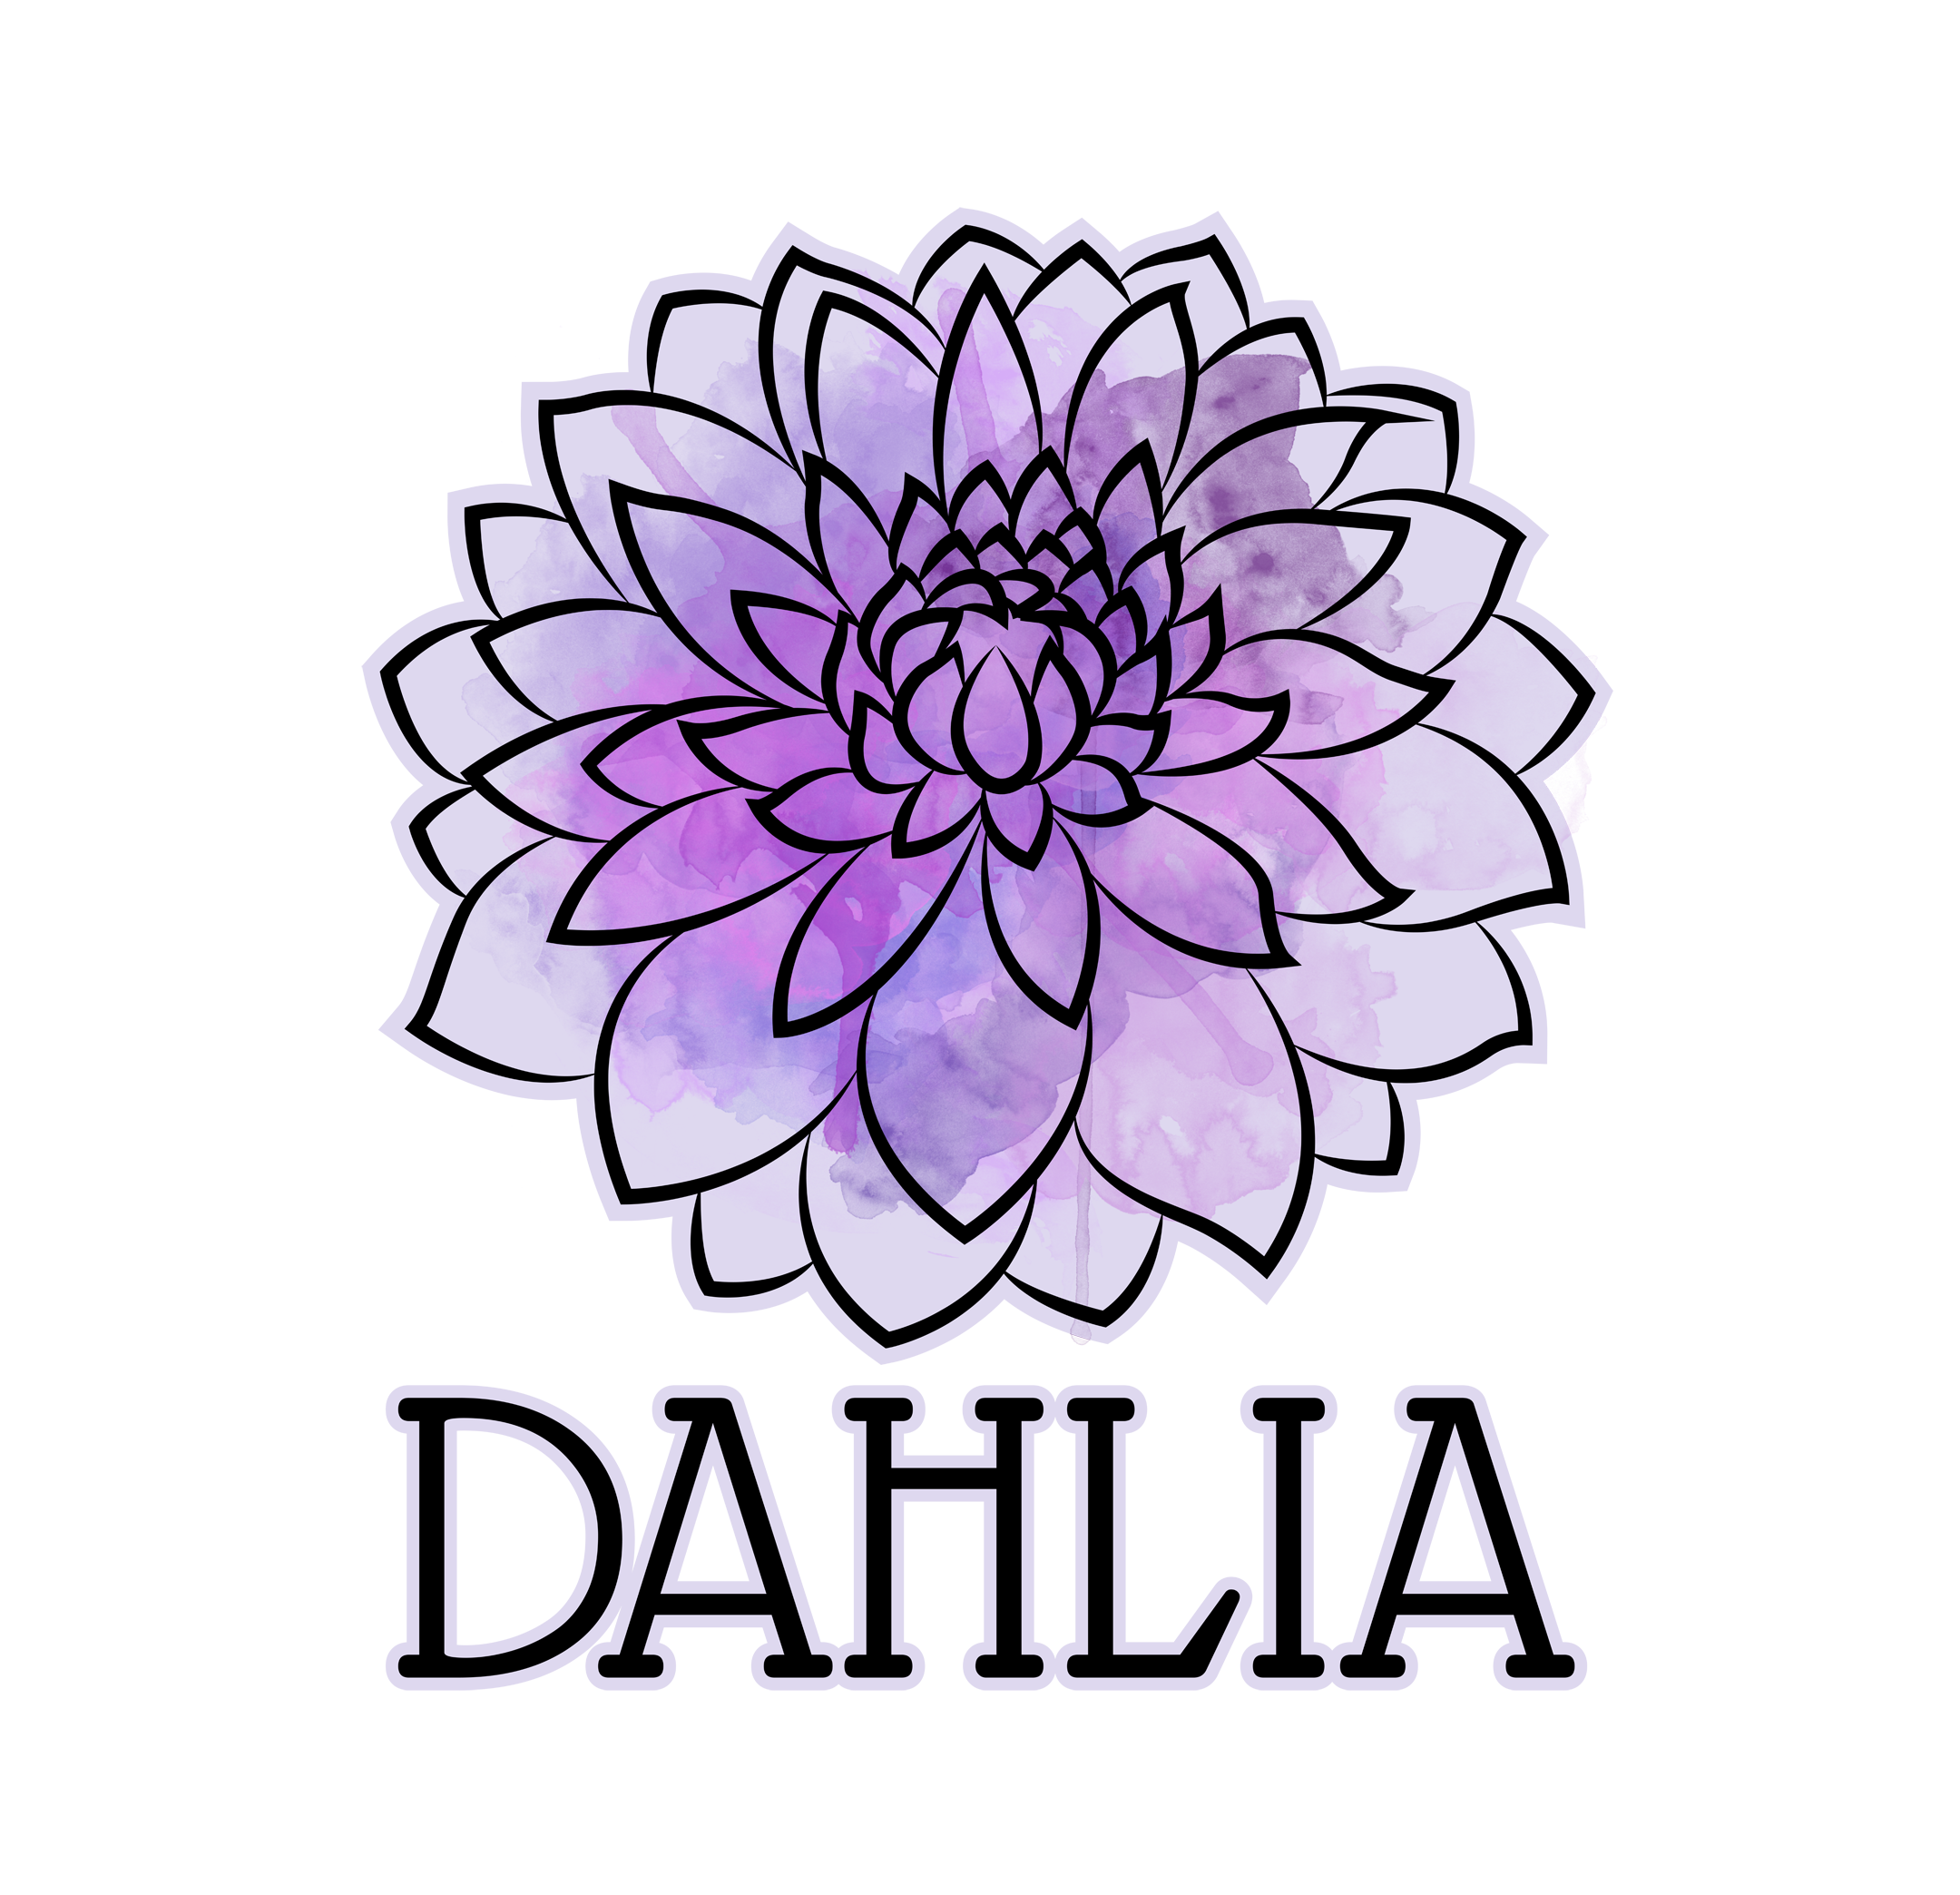 dahlianewlogo_all_small